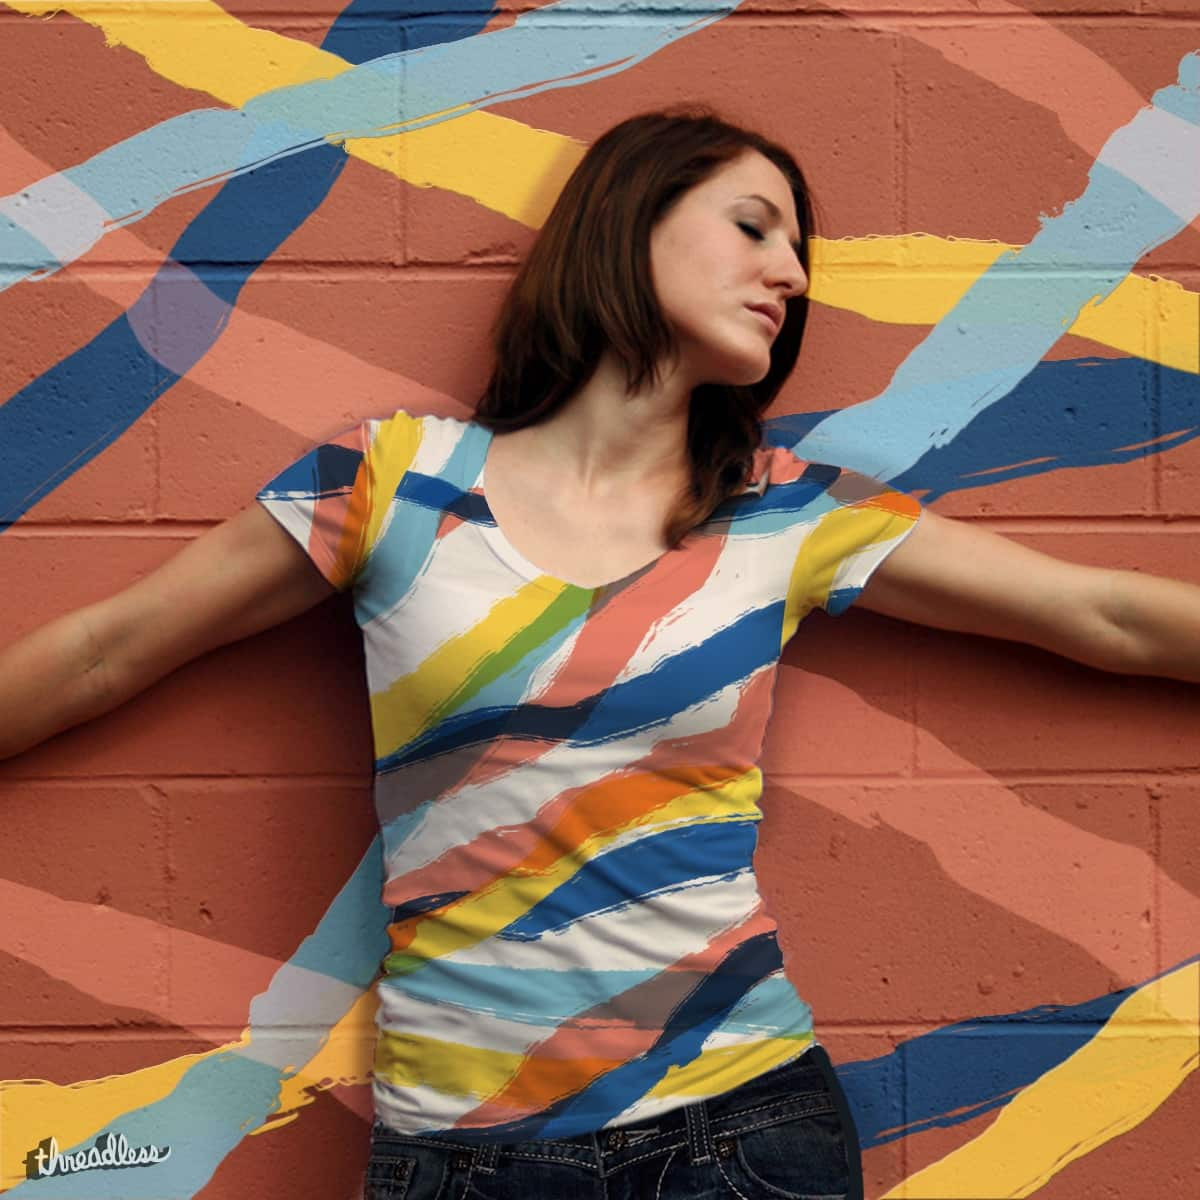 Paint Yourself a Colorful Life by mooshgoboom on Threadless